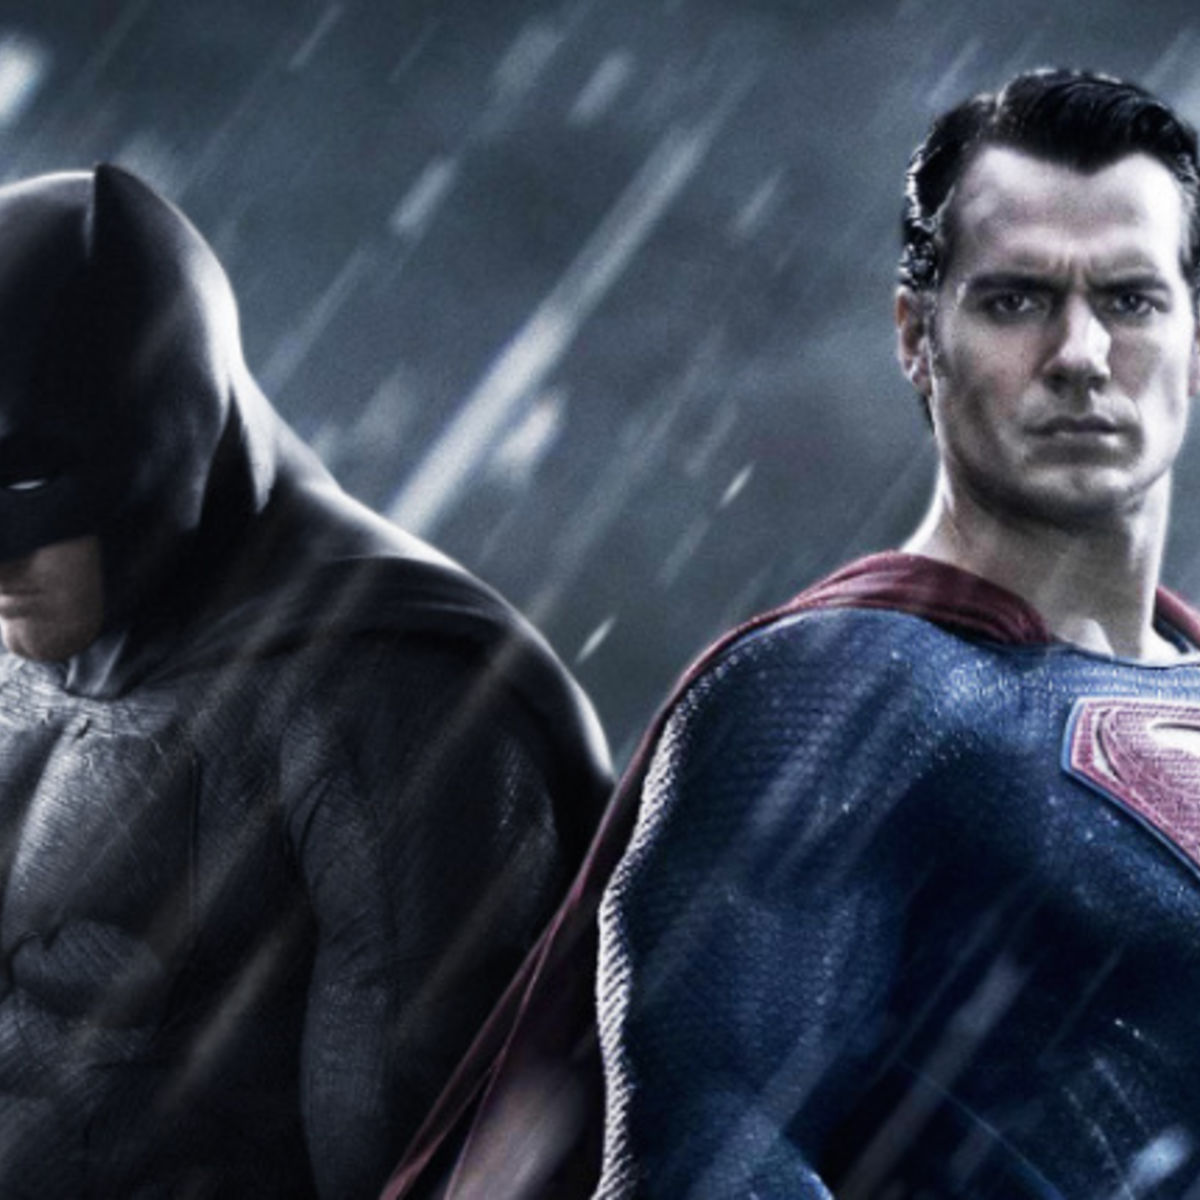 Report Heres When We Finally Get To See The First Batman V Superman Trailer